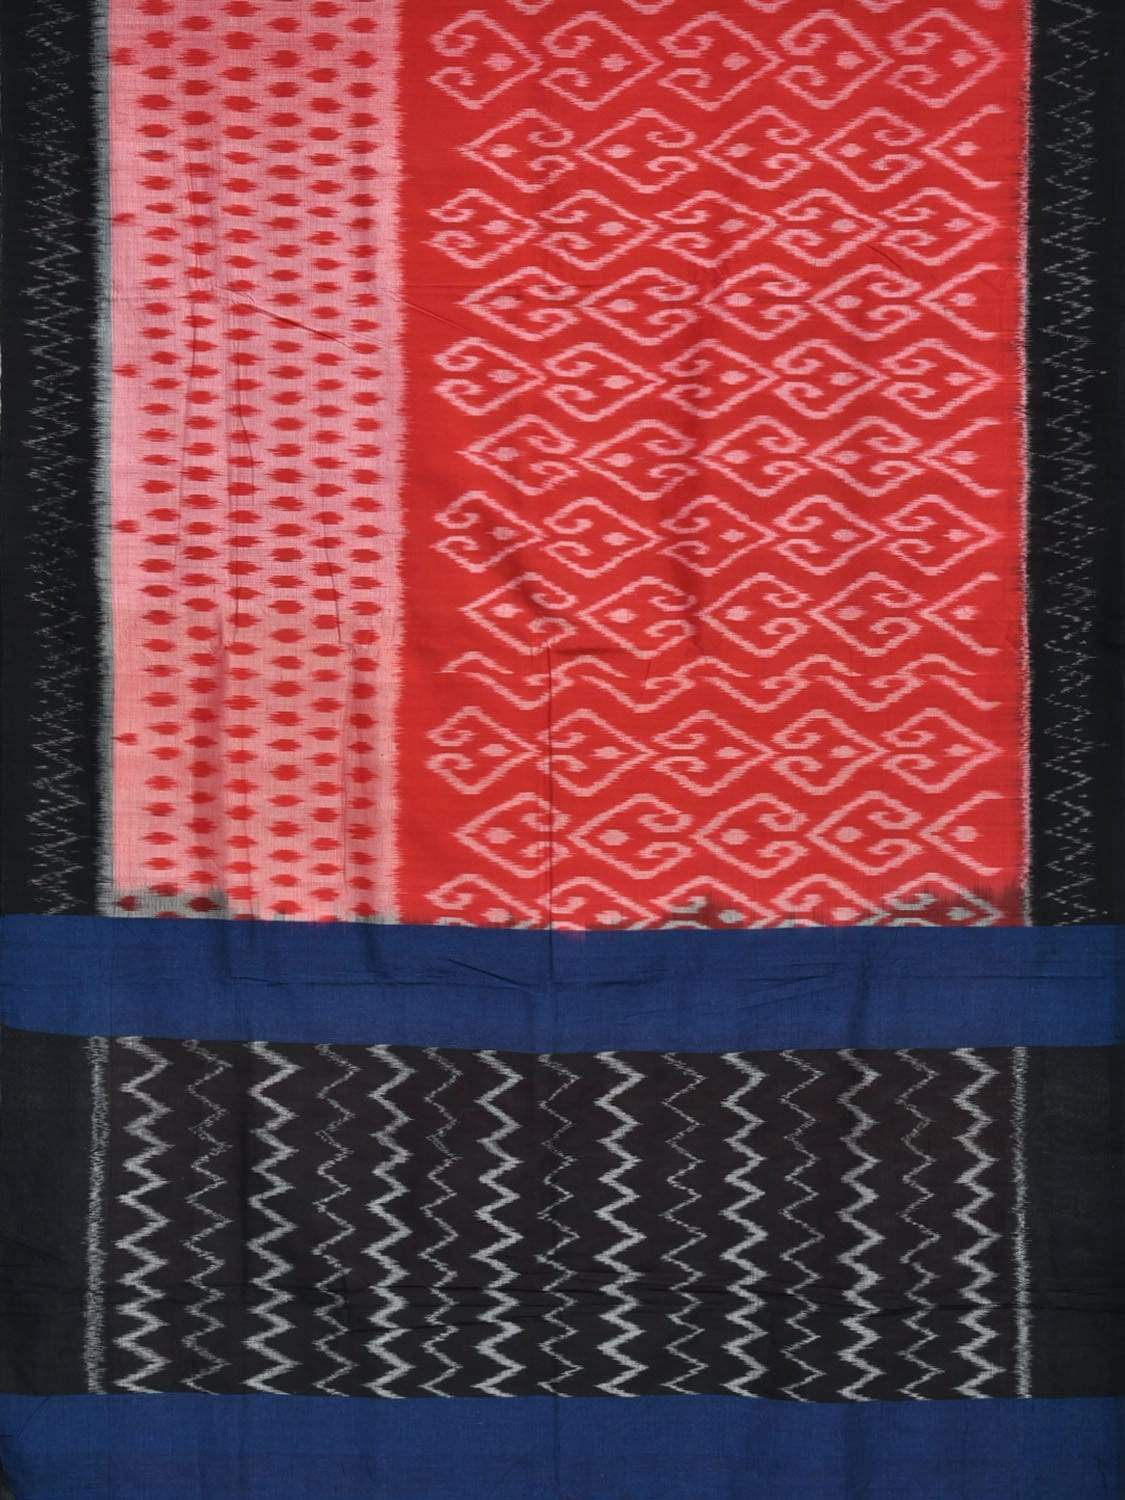 Red and Black Pochampally Ikat Cotton Handloom Saree with Border and Dual Body Design No Blouse i0528